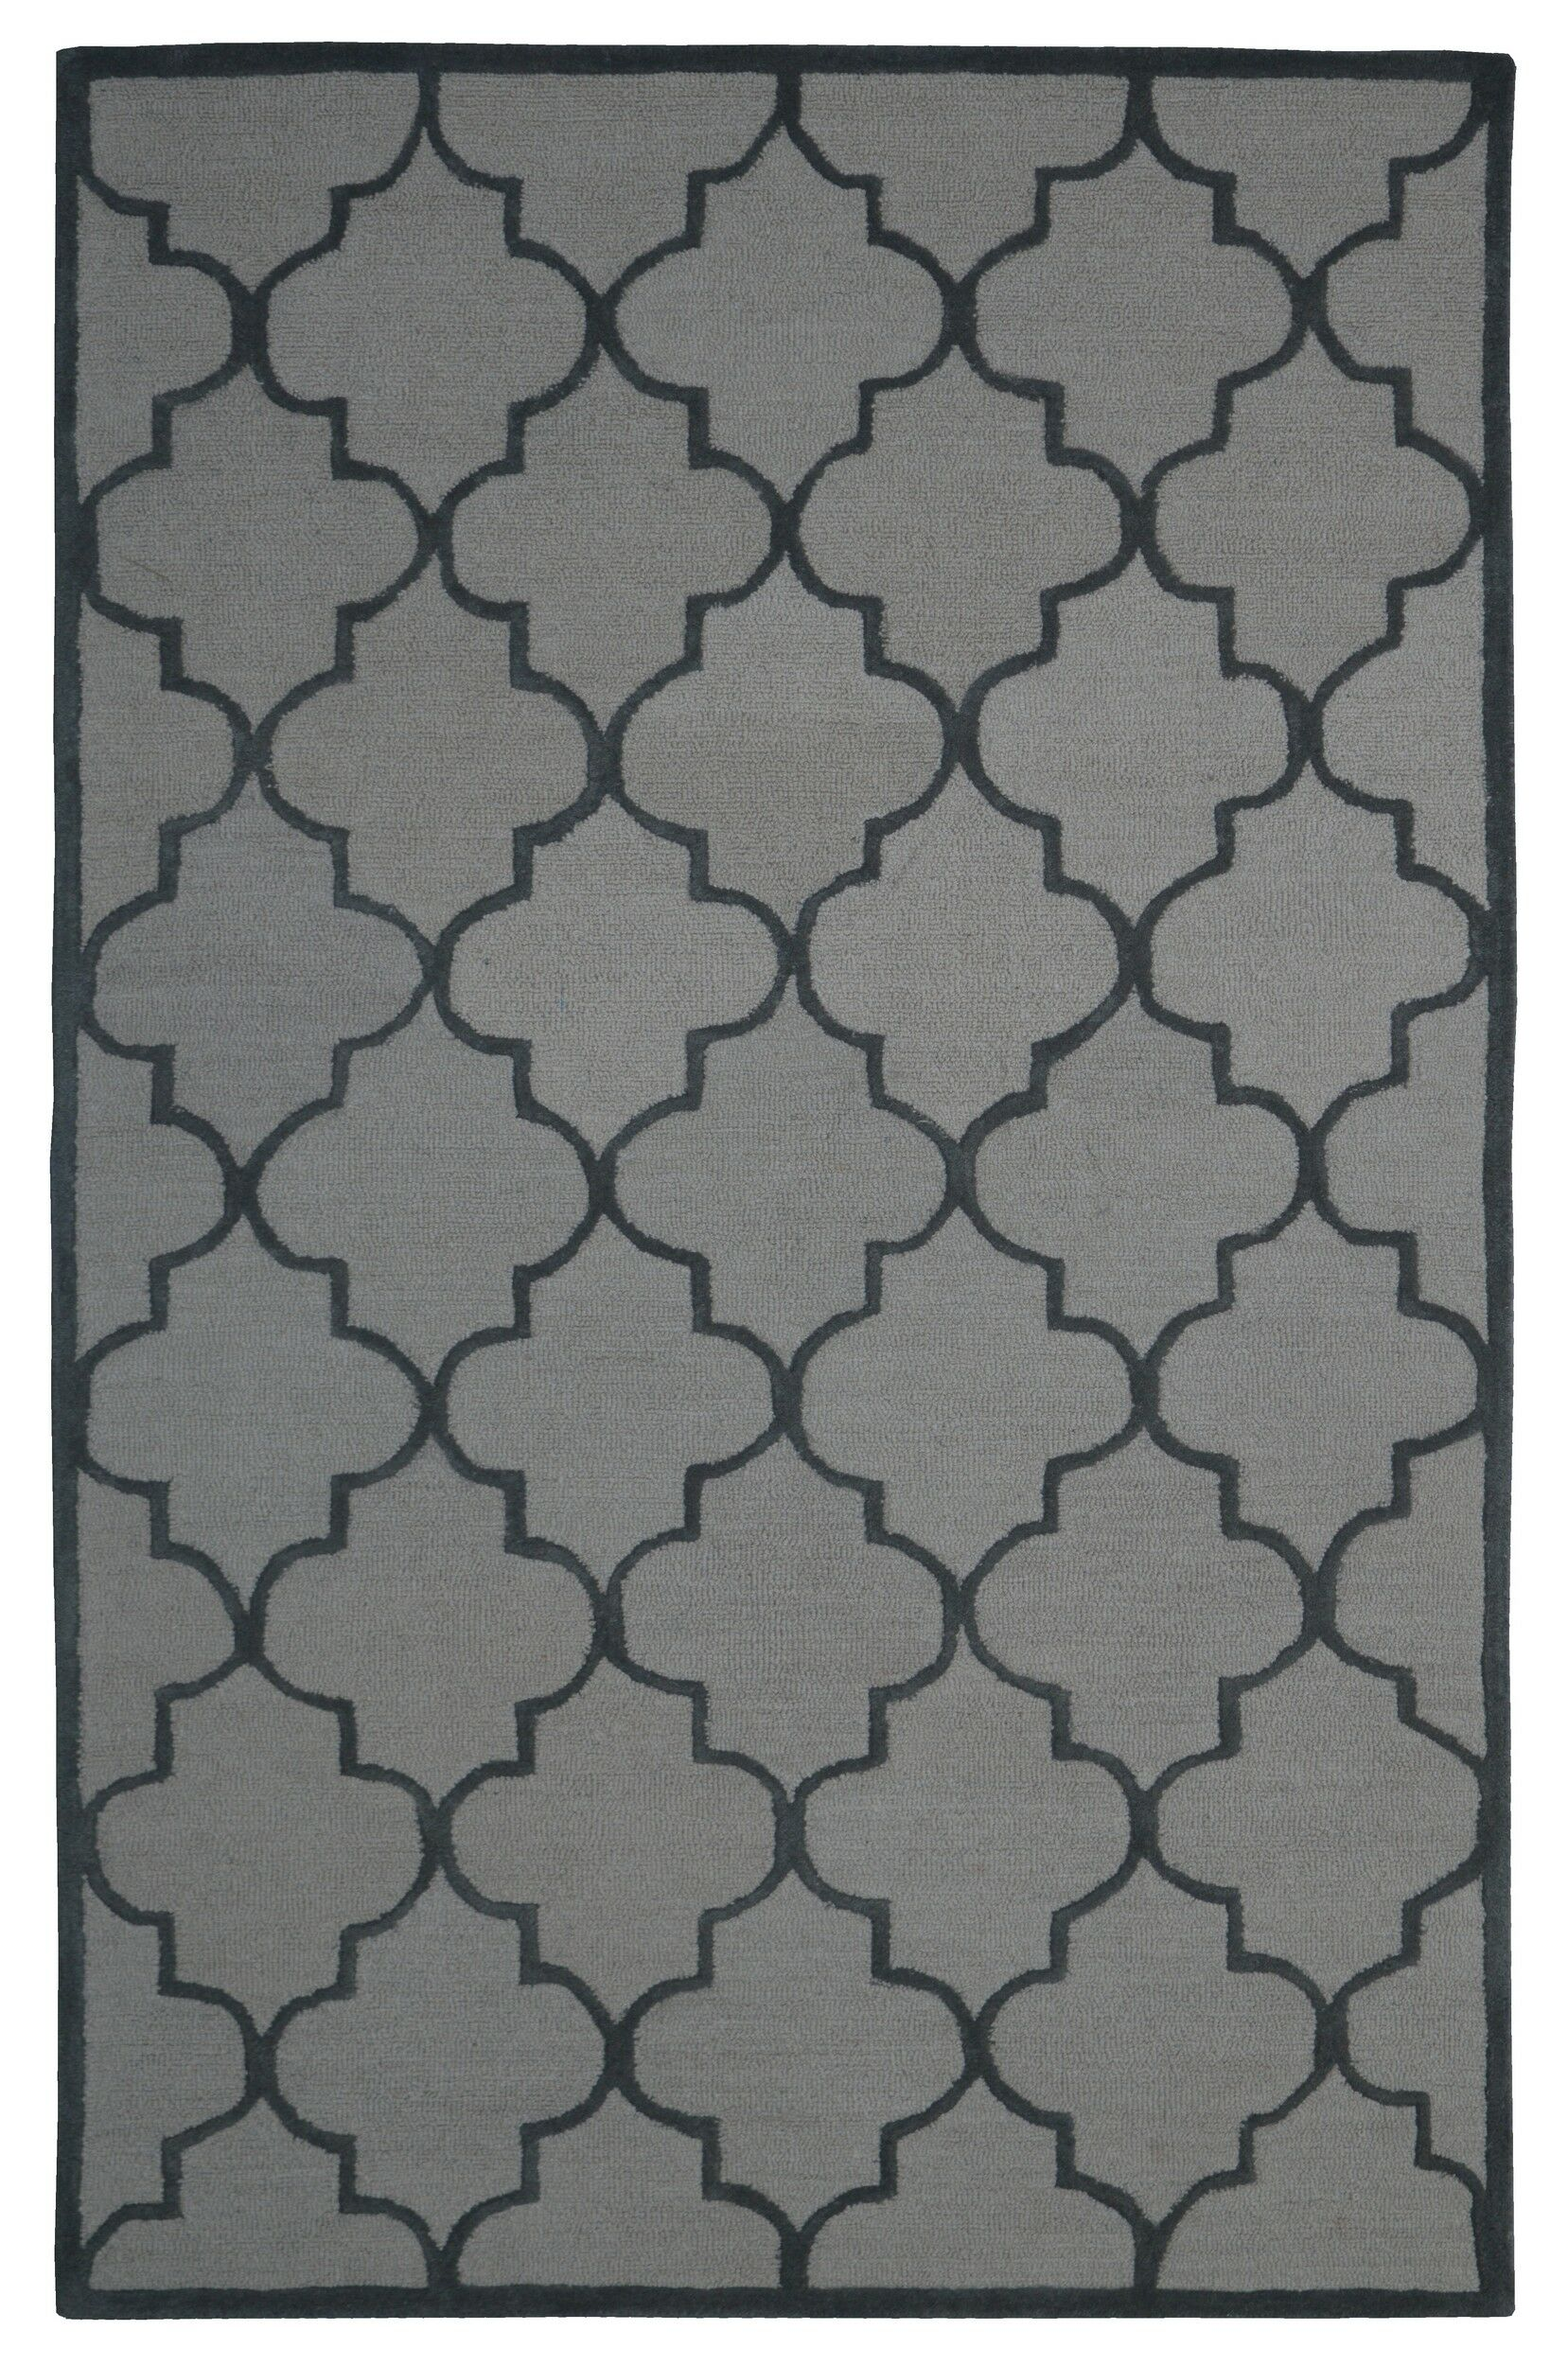 Wool Hand-Tufted Beige/Gray Area Rug Rug Size: 5' x 8'